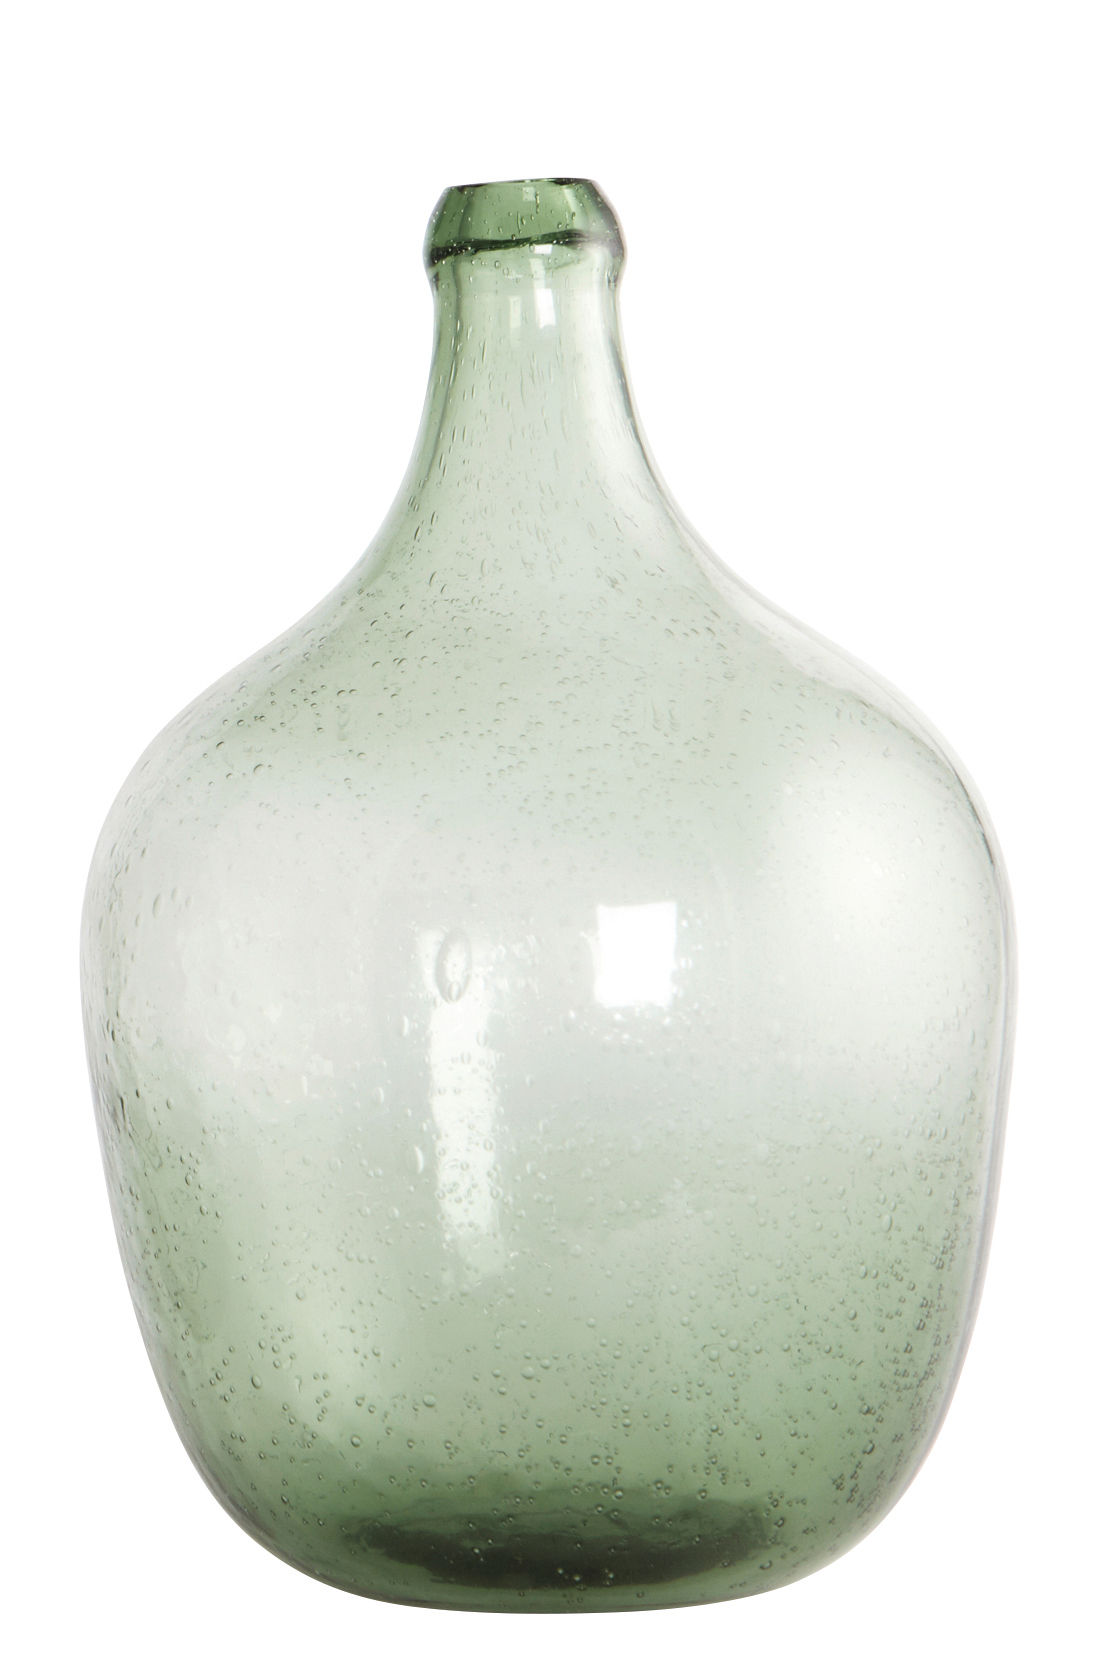 Decoration - Vases - Bottle Bud vase - Mouthblow glass - H 28,5 cm by House Doctor - Light green - Mouth blown glass